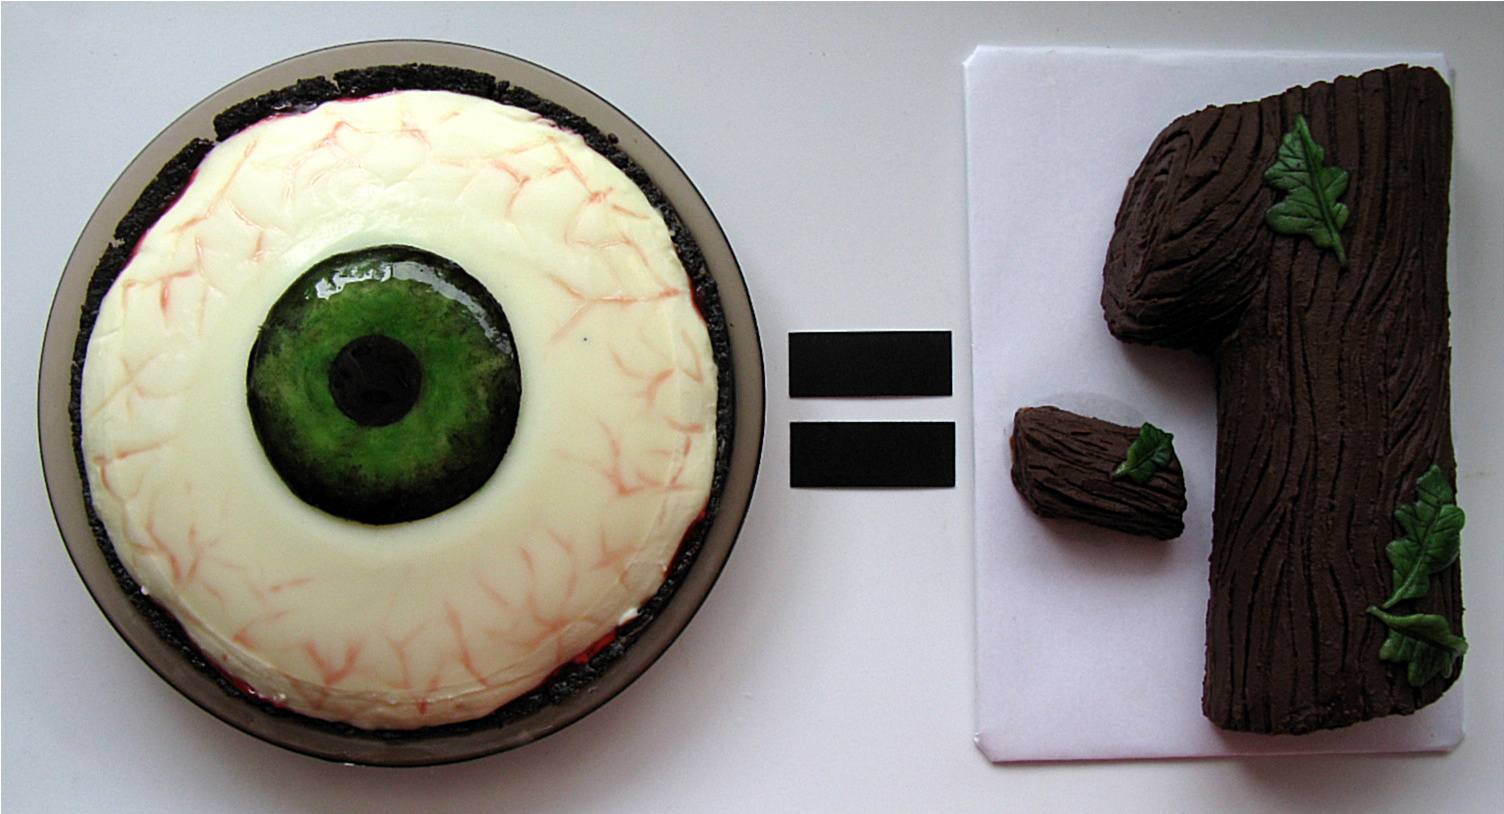 i pi = log(-1): EYE PIE (Chocolate Cherry Almond Panna Cotta Pie) = LOG NEGATIVE ONE (Chocolate Almond Log)